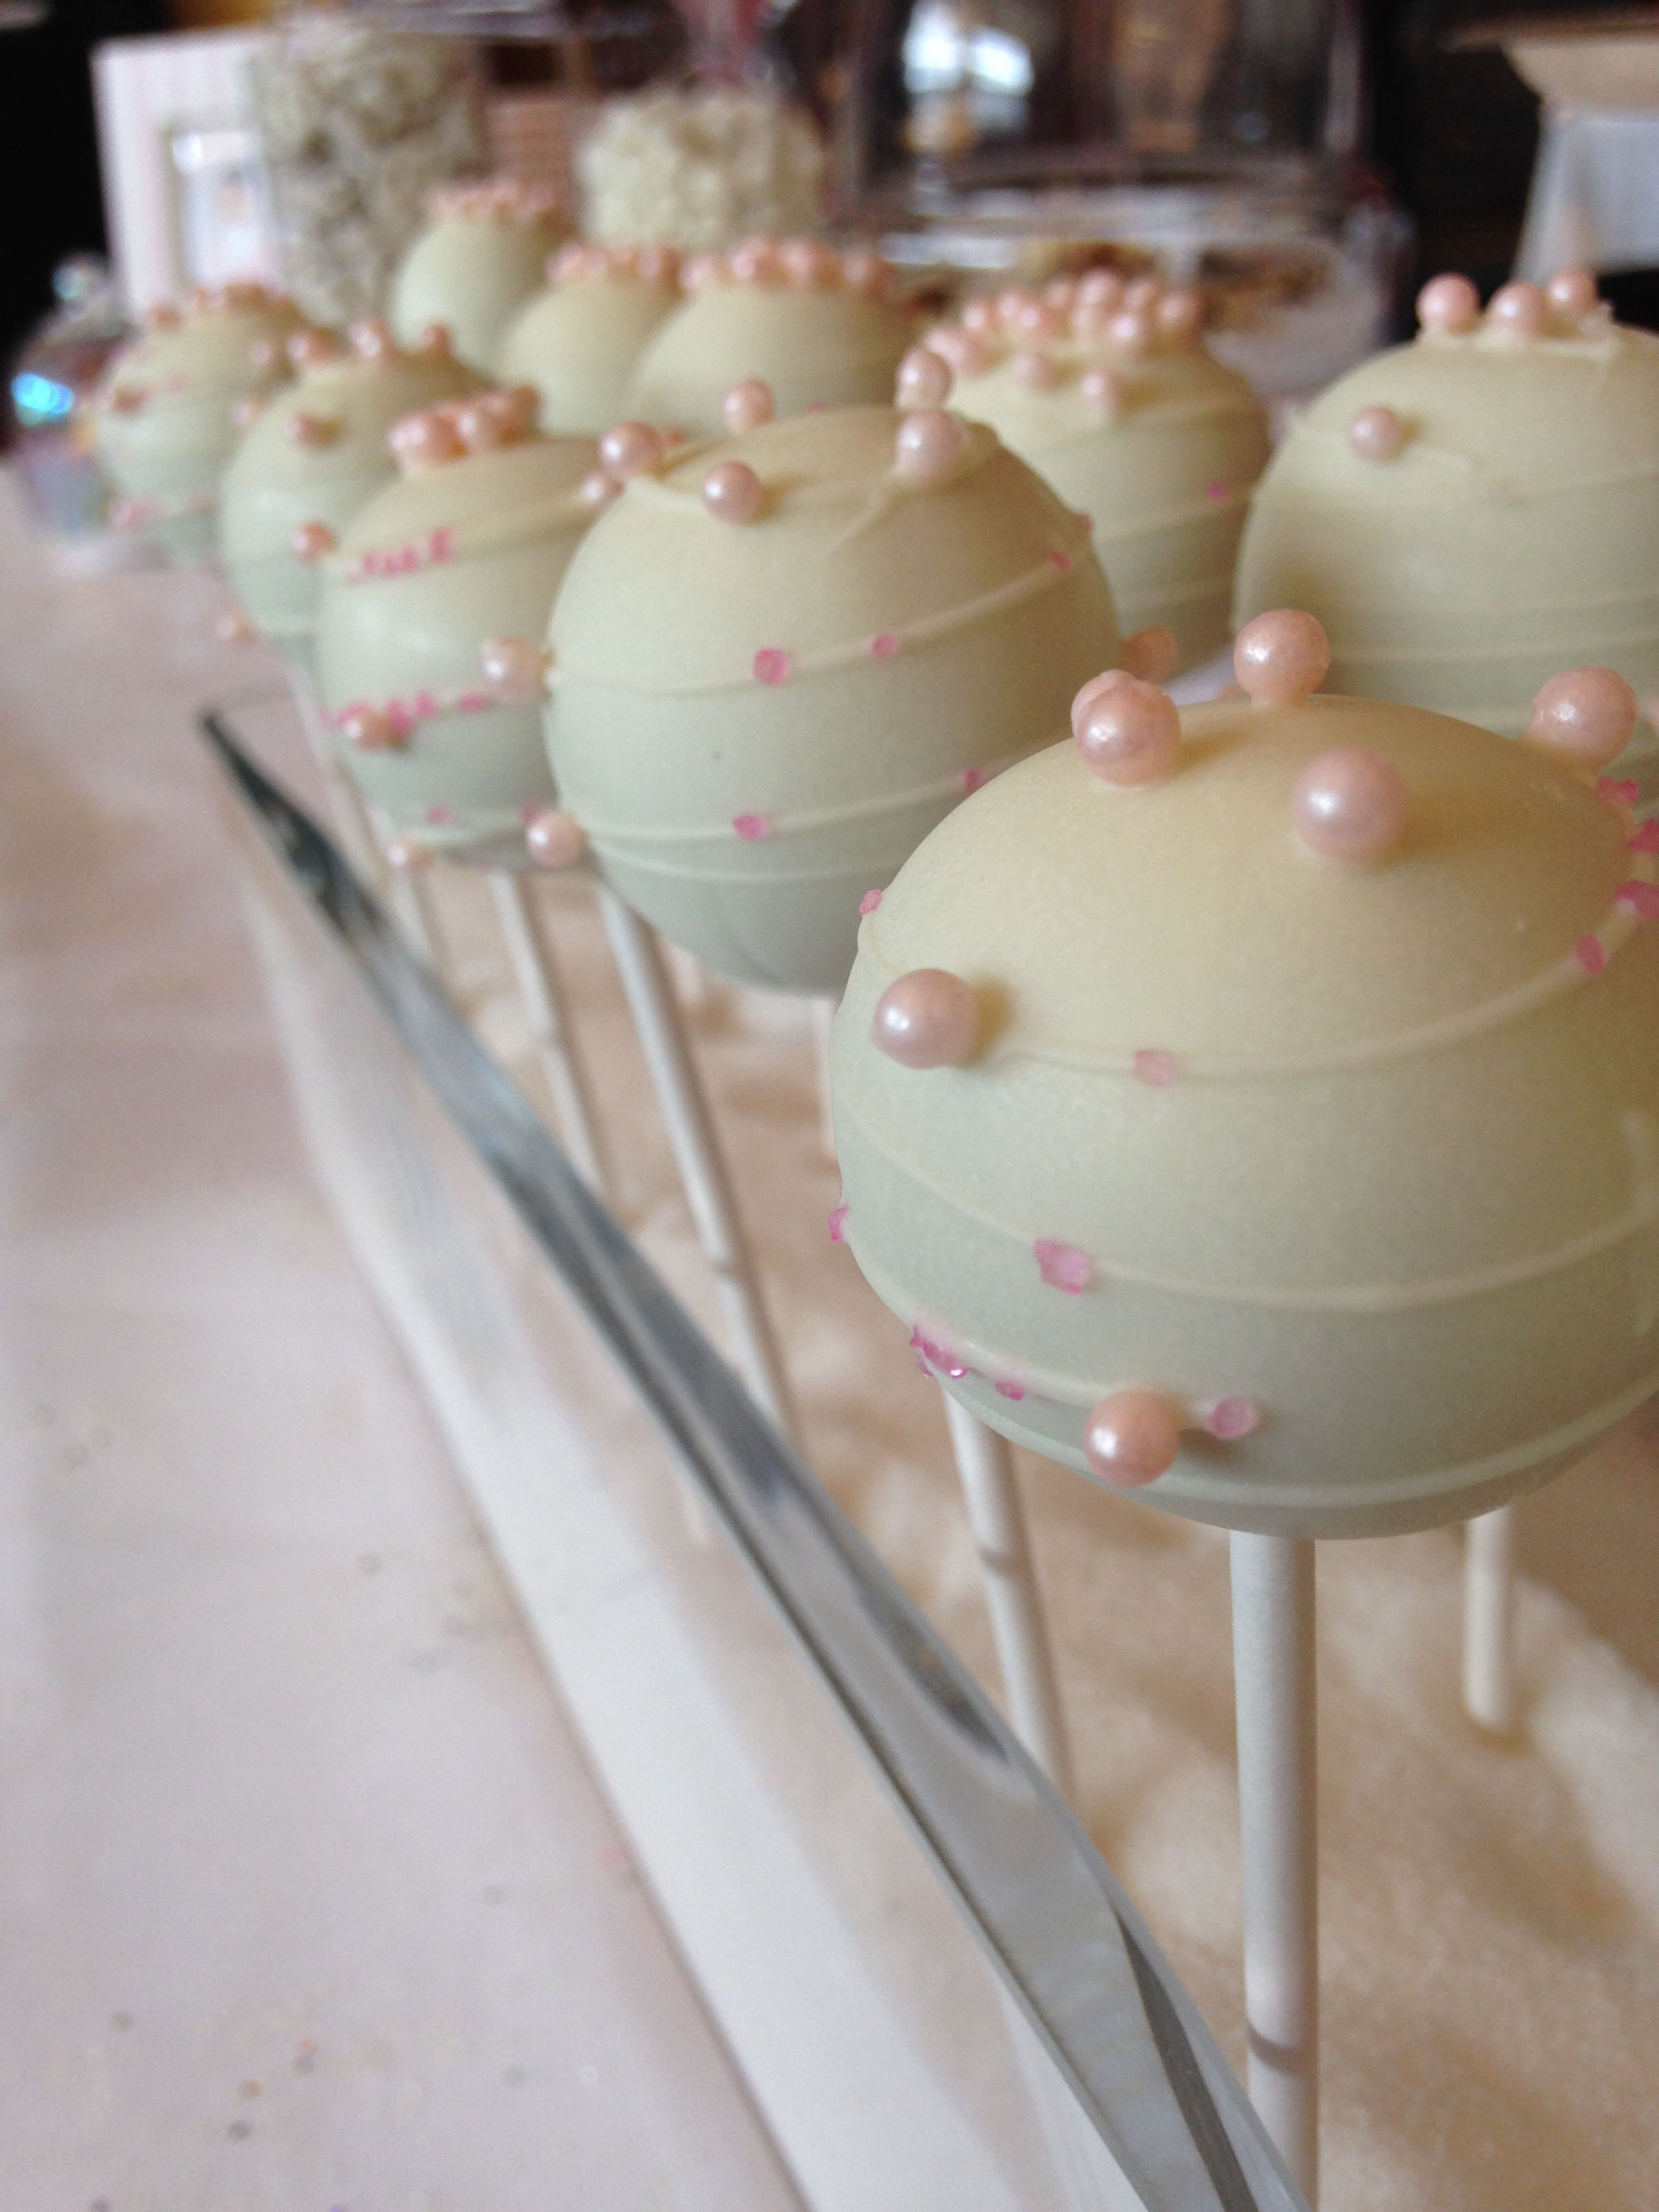 Cake pops white chocolate melts pearls cake pops